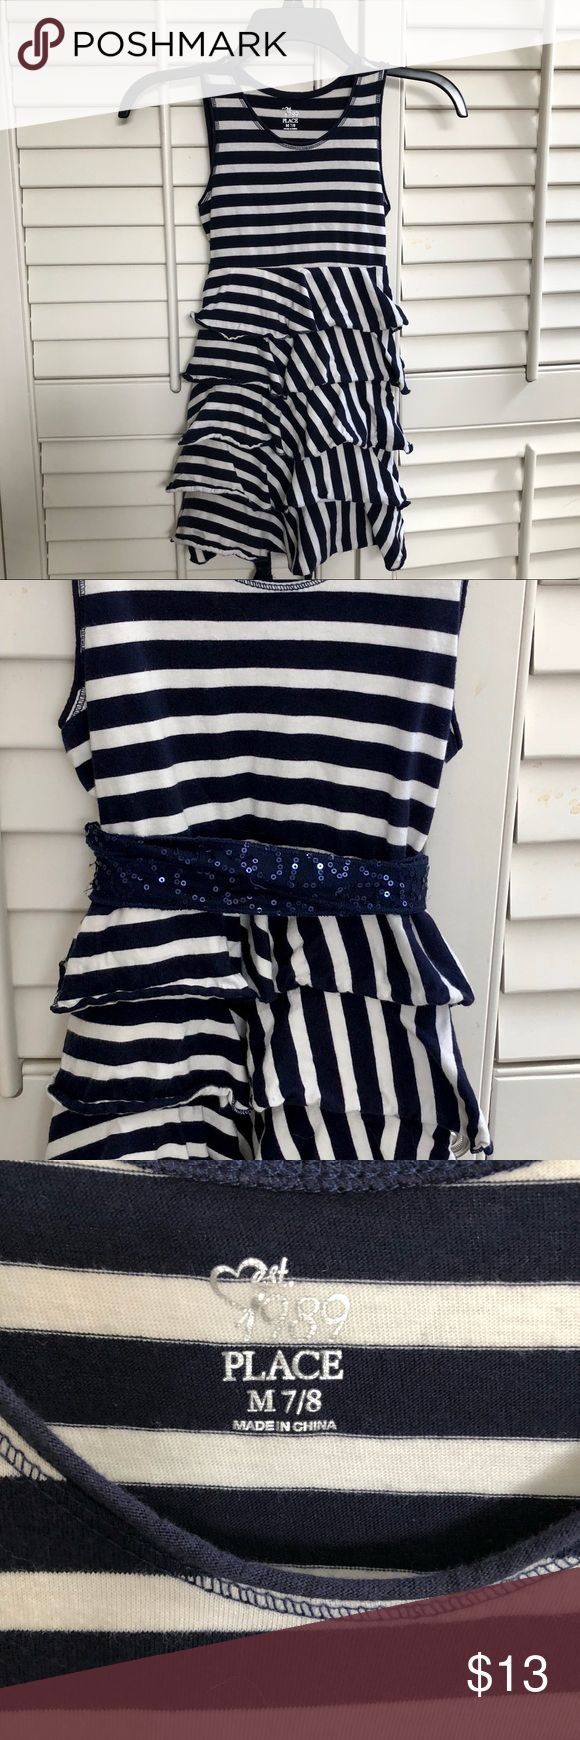 Adorable blue & white striped dress w/sash. SZ 7/8 From The Children's Place...perfect summer dress with a blue & white nautical look. Comes with a navy sequin sash you can tie in the front or back (see photos)...or go without it for a more casual look😀. With the ruffled bottom-it has enough style on its own! SZ 7/8. Selling for a friend...I don't see any flaws whatsoever!! The Children's Place Dresses Casual